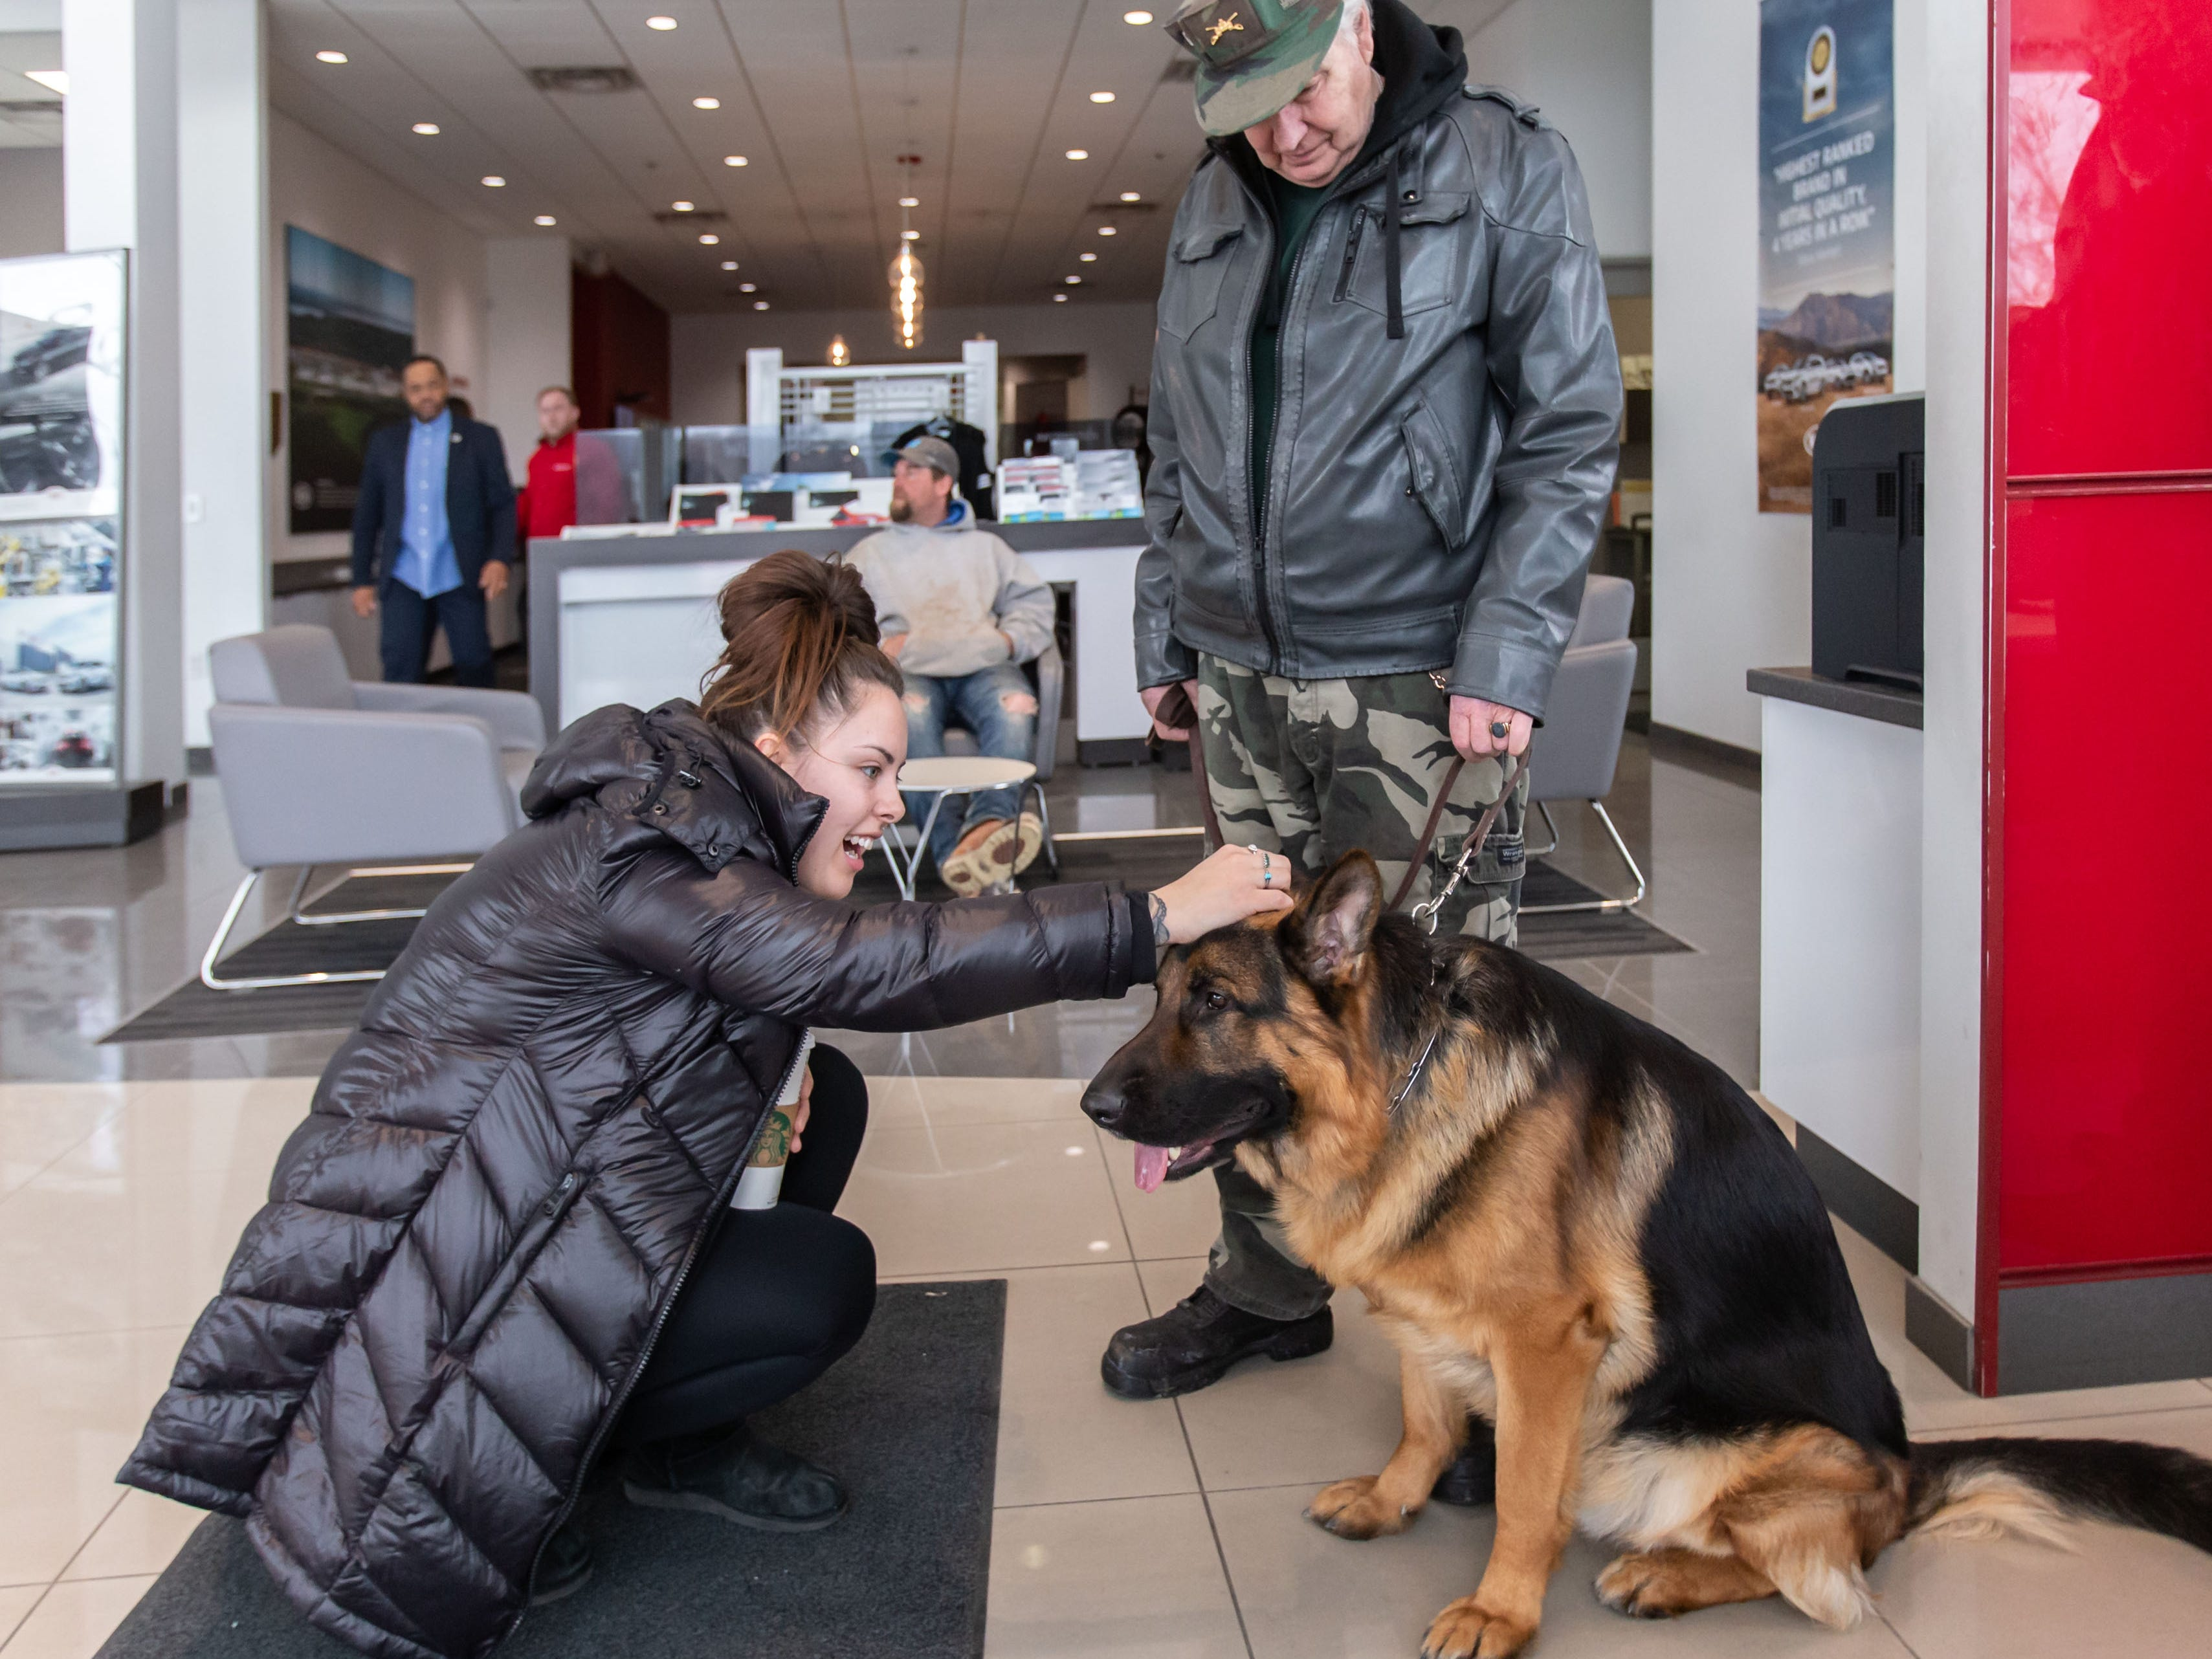 Ashley Lemay of Milwaukee pets Grizz, a purebred German Shepherd owned by Dennis Kratz of Grafton, during the Adopt a Pet program at Russ Darrow Kia of Wauwatosa on Saturday, March 9, 2019. The event, held in partnership with the Humane Animal Welfare Society (HAWS) in Waukesha and the German Shepard Dogs Club of Wisconsin (GSDCW), offered attendees the opportunity to meet and adopt dogs, cats, rabbits, and other types of animals.